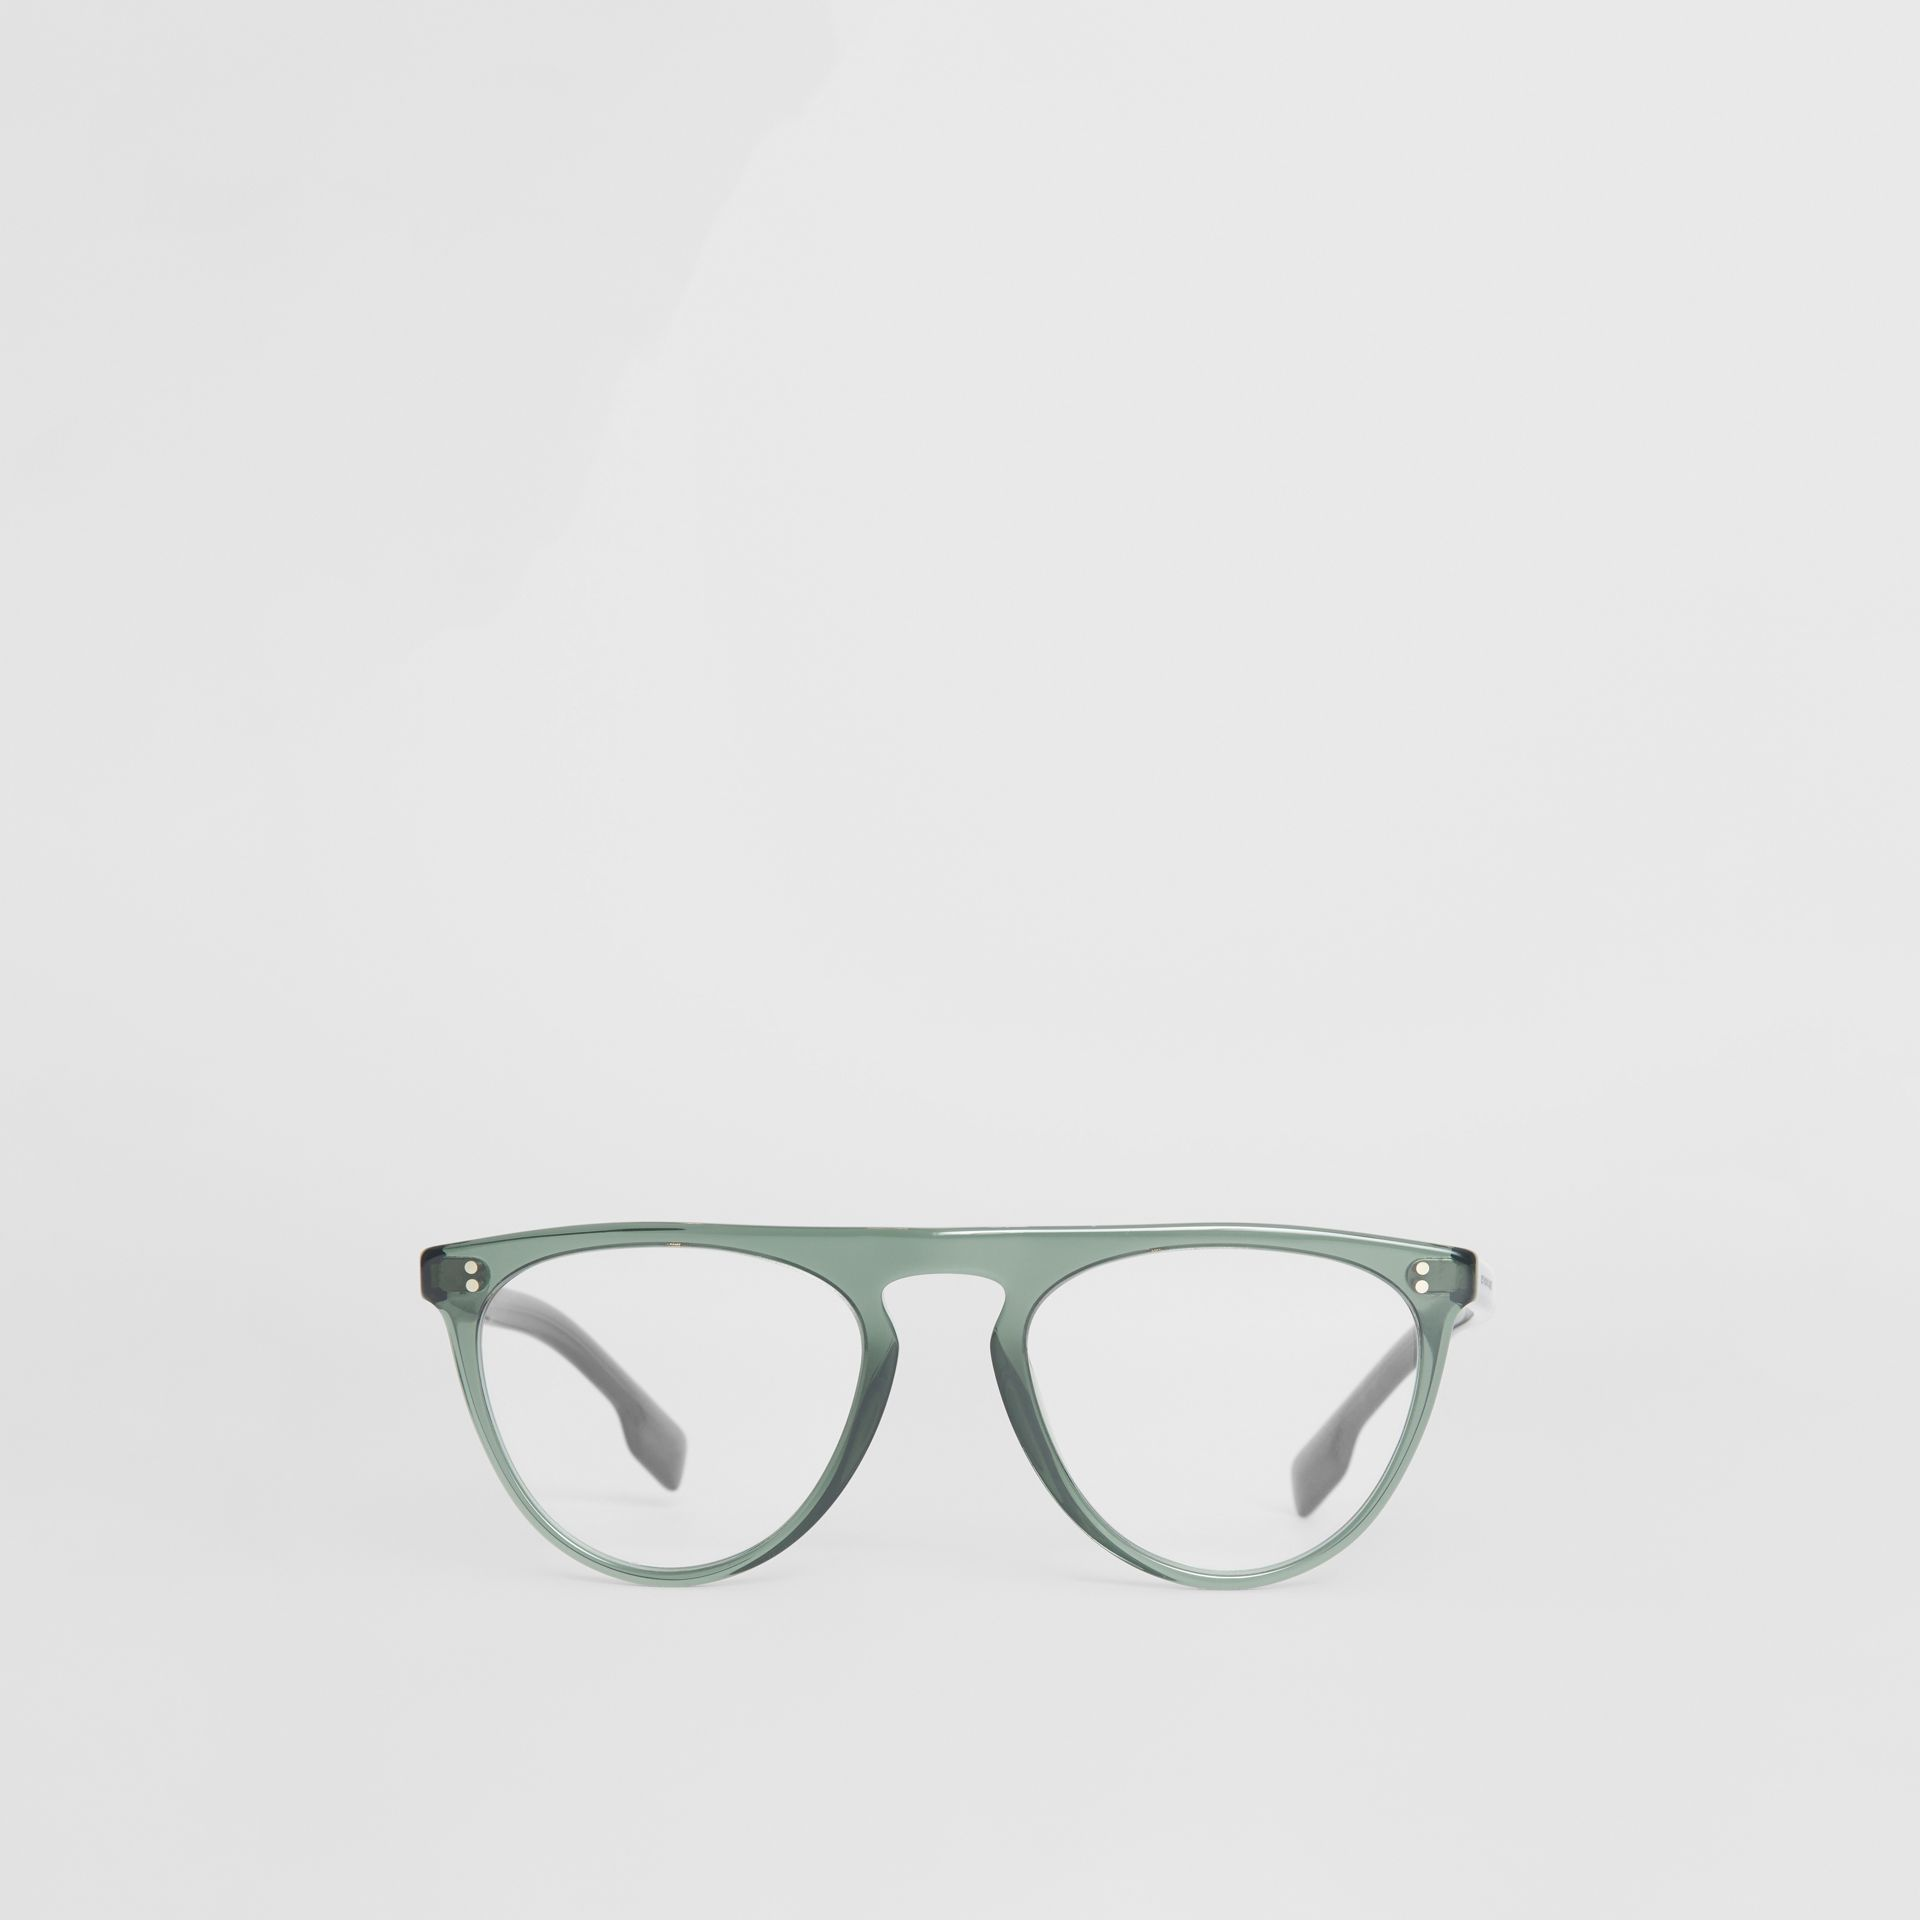 Keyhole D-shaped Optical Frames in Green - Men | Burberry Canada - gallery image 0